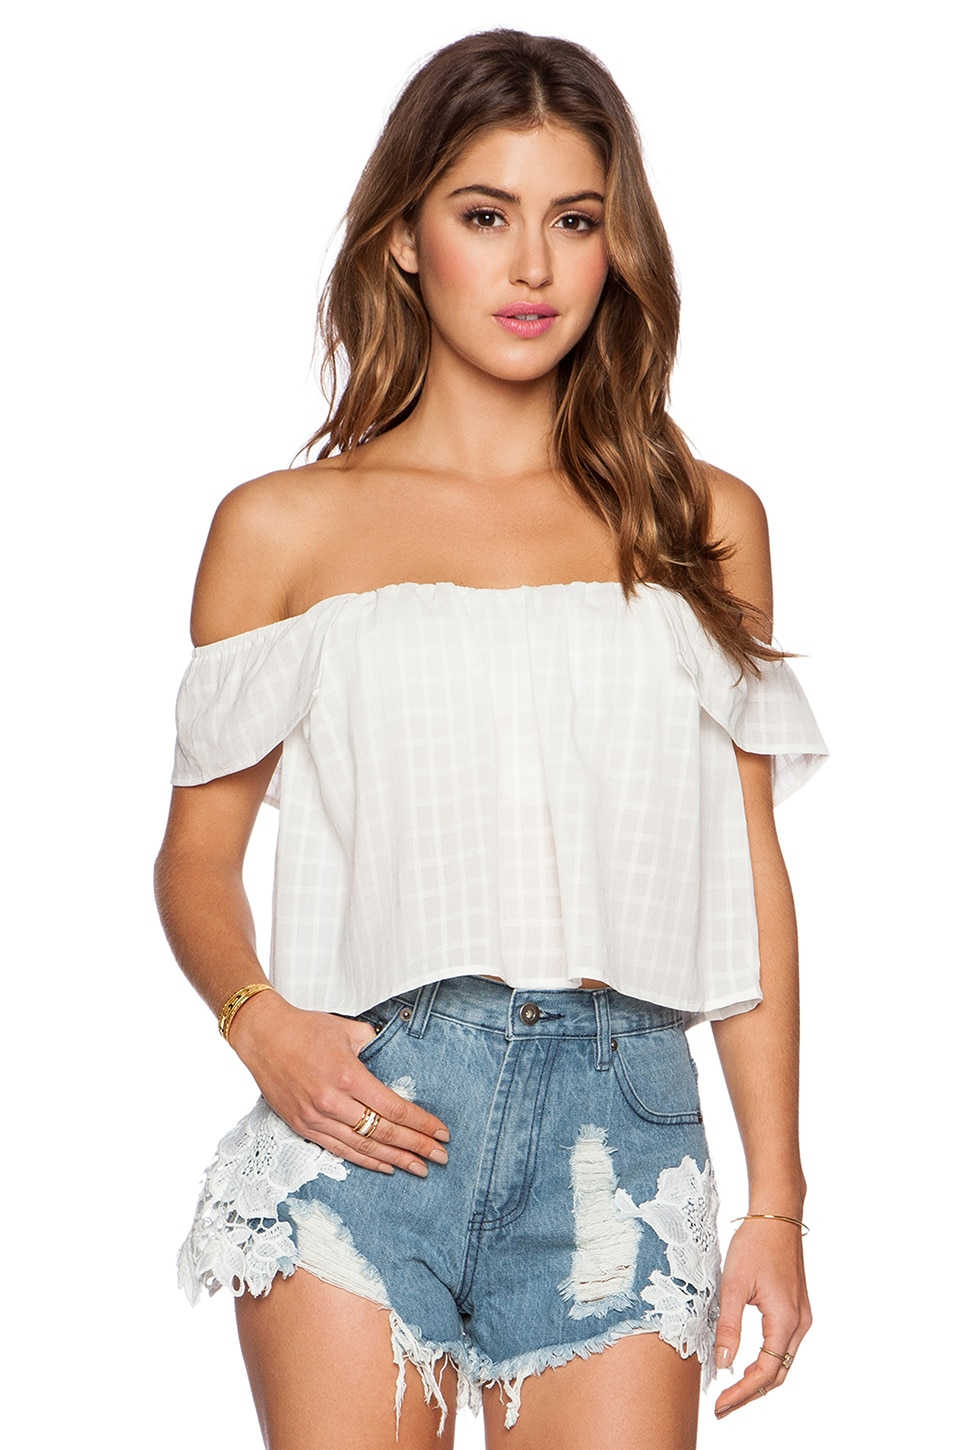 Lost in Lunar Wilde Heart Higher Love Top in White